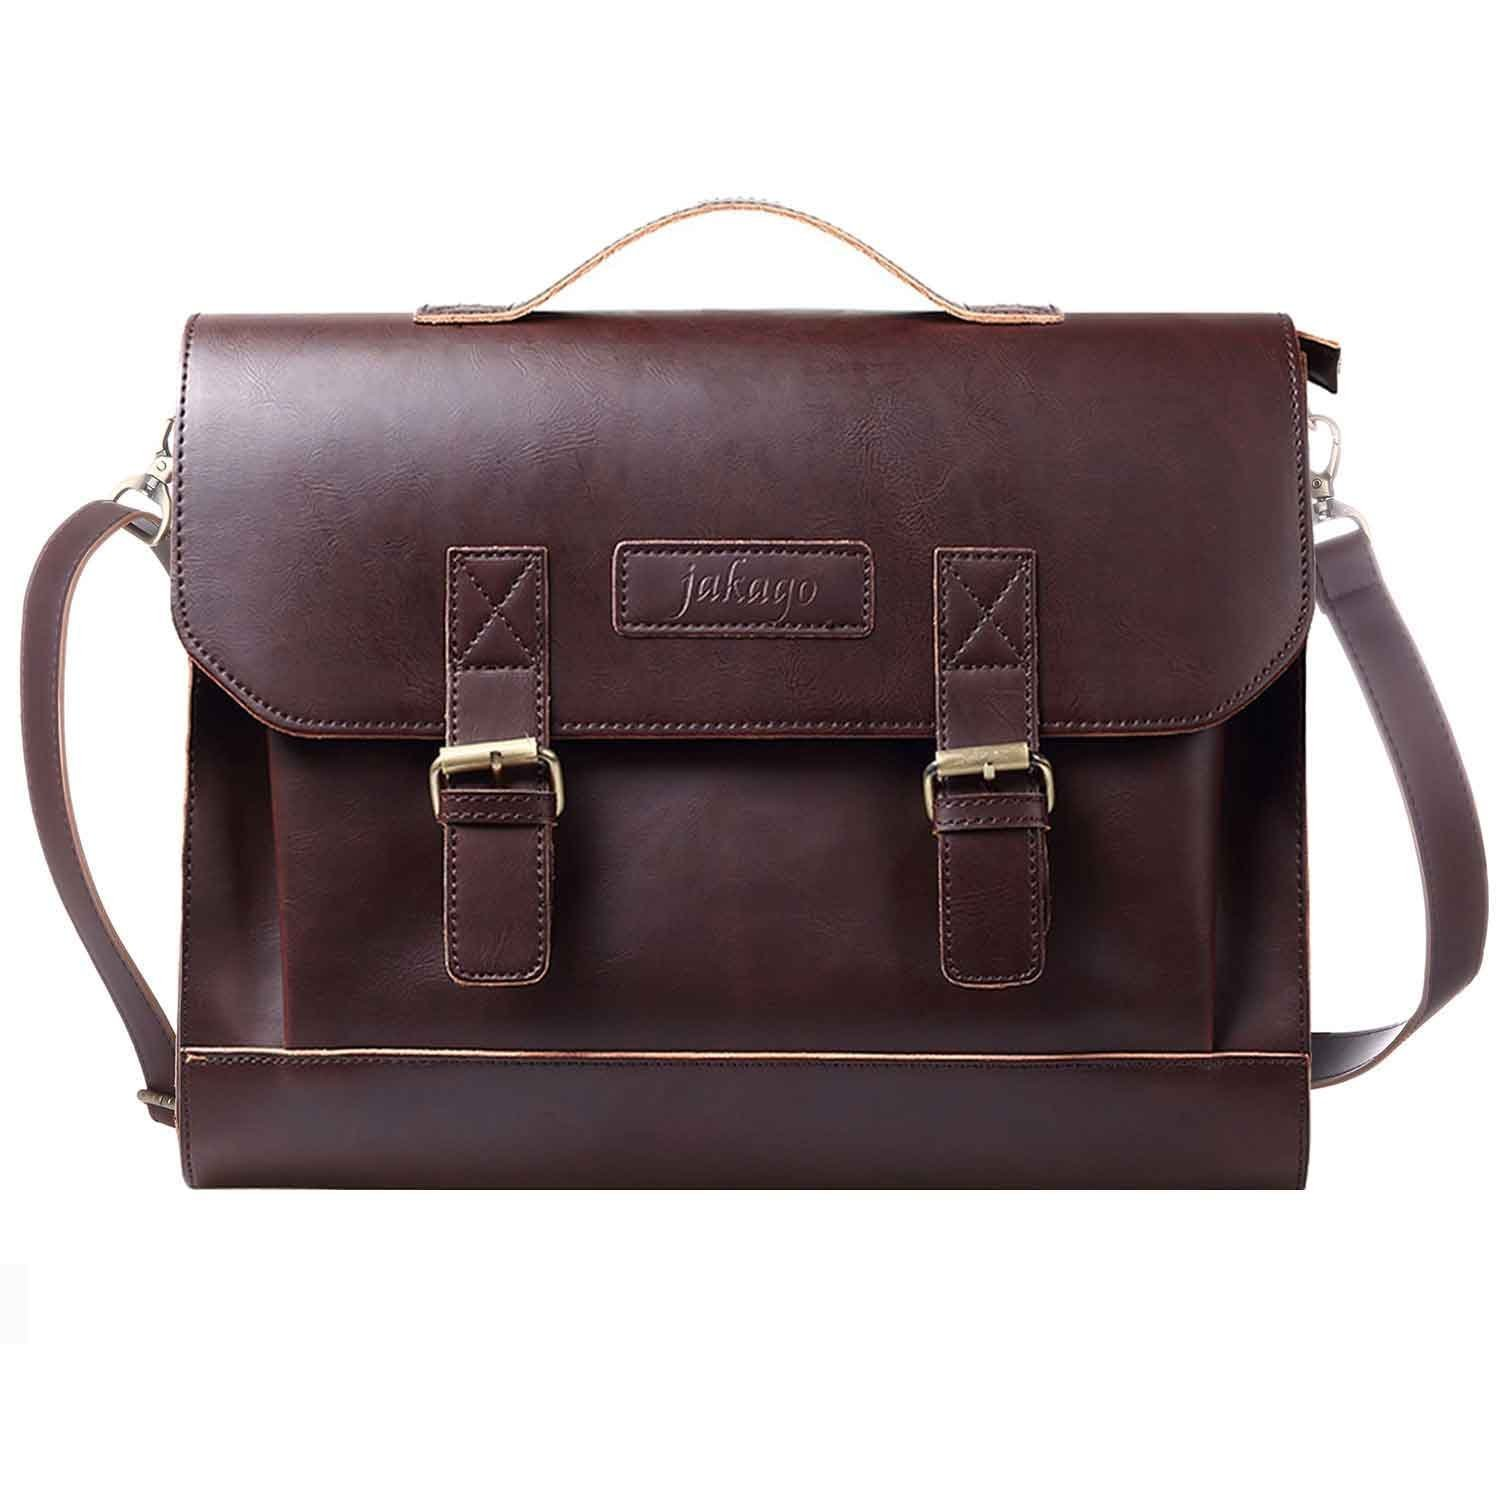 JAKAGO Retro Leather Briefcase Satchel Tote Messenger Shoulder Bag Laptop Bag Handbag Crossbody Bag for Men and Women (brown)